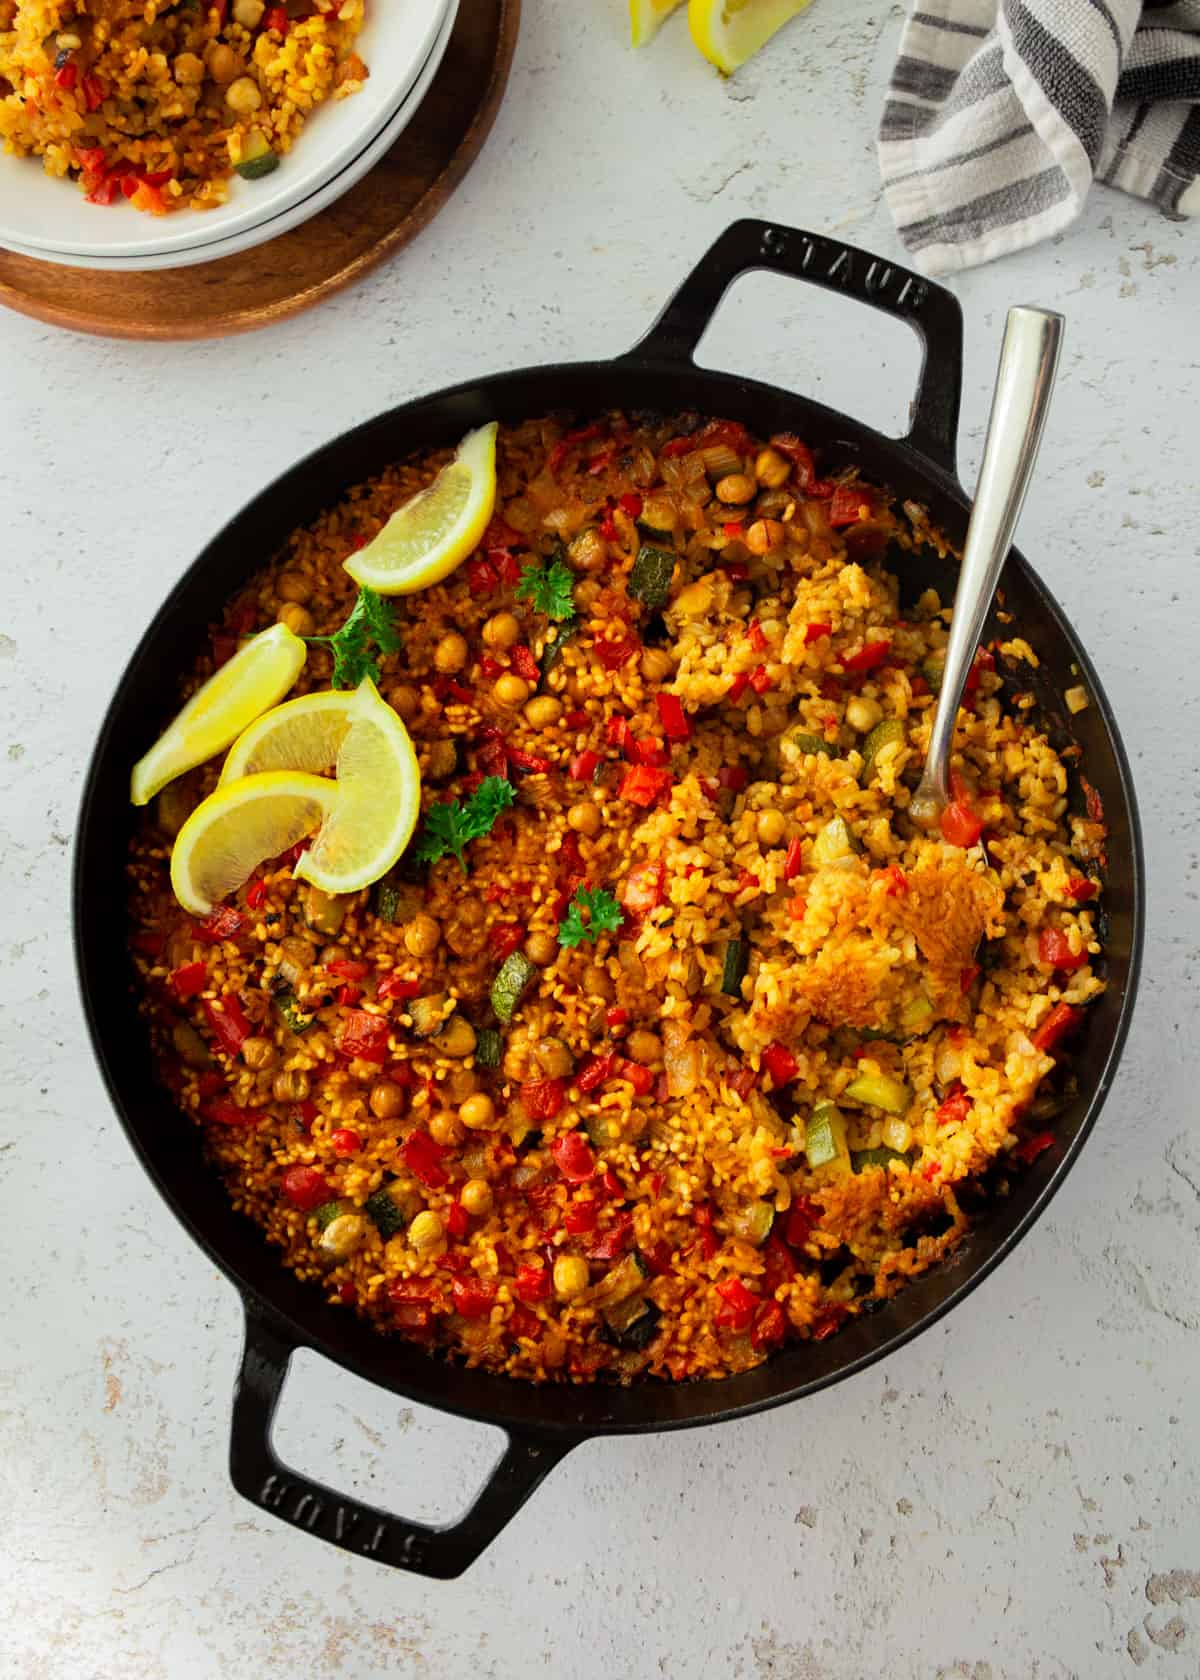 a spoon in a skillet of paella